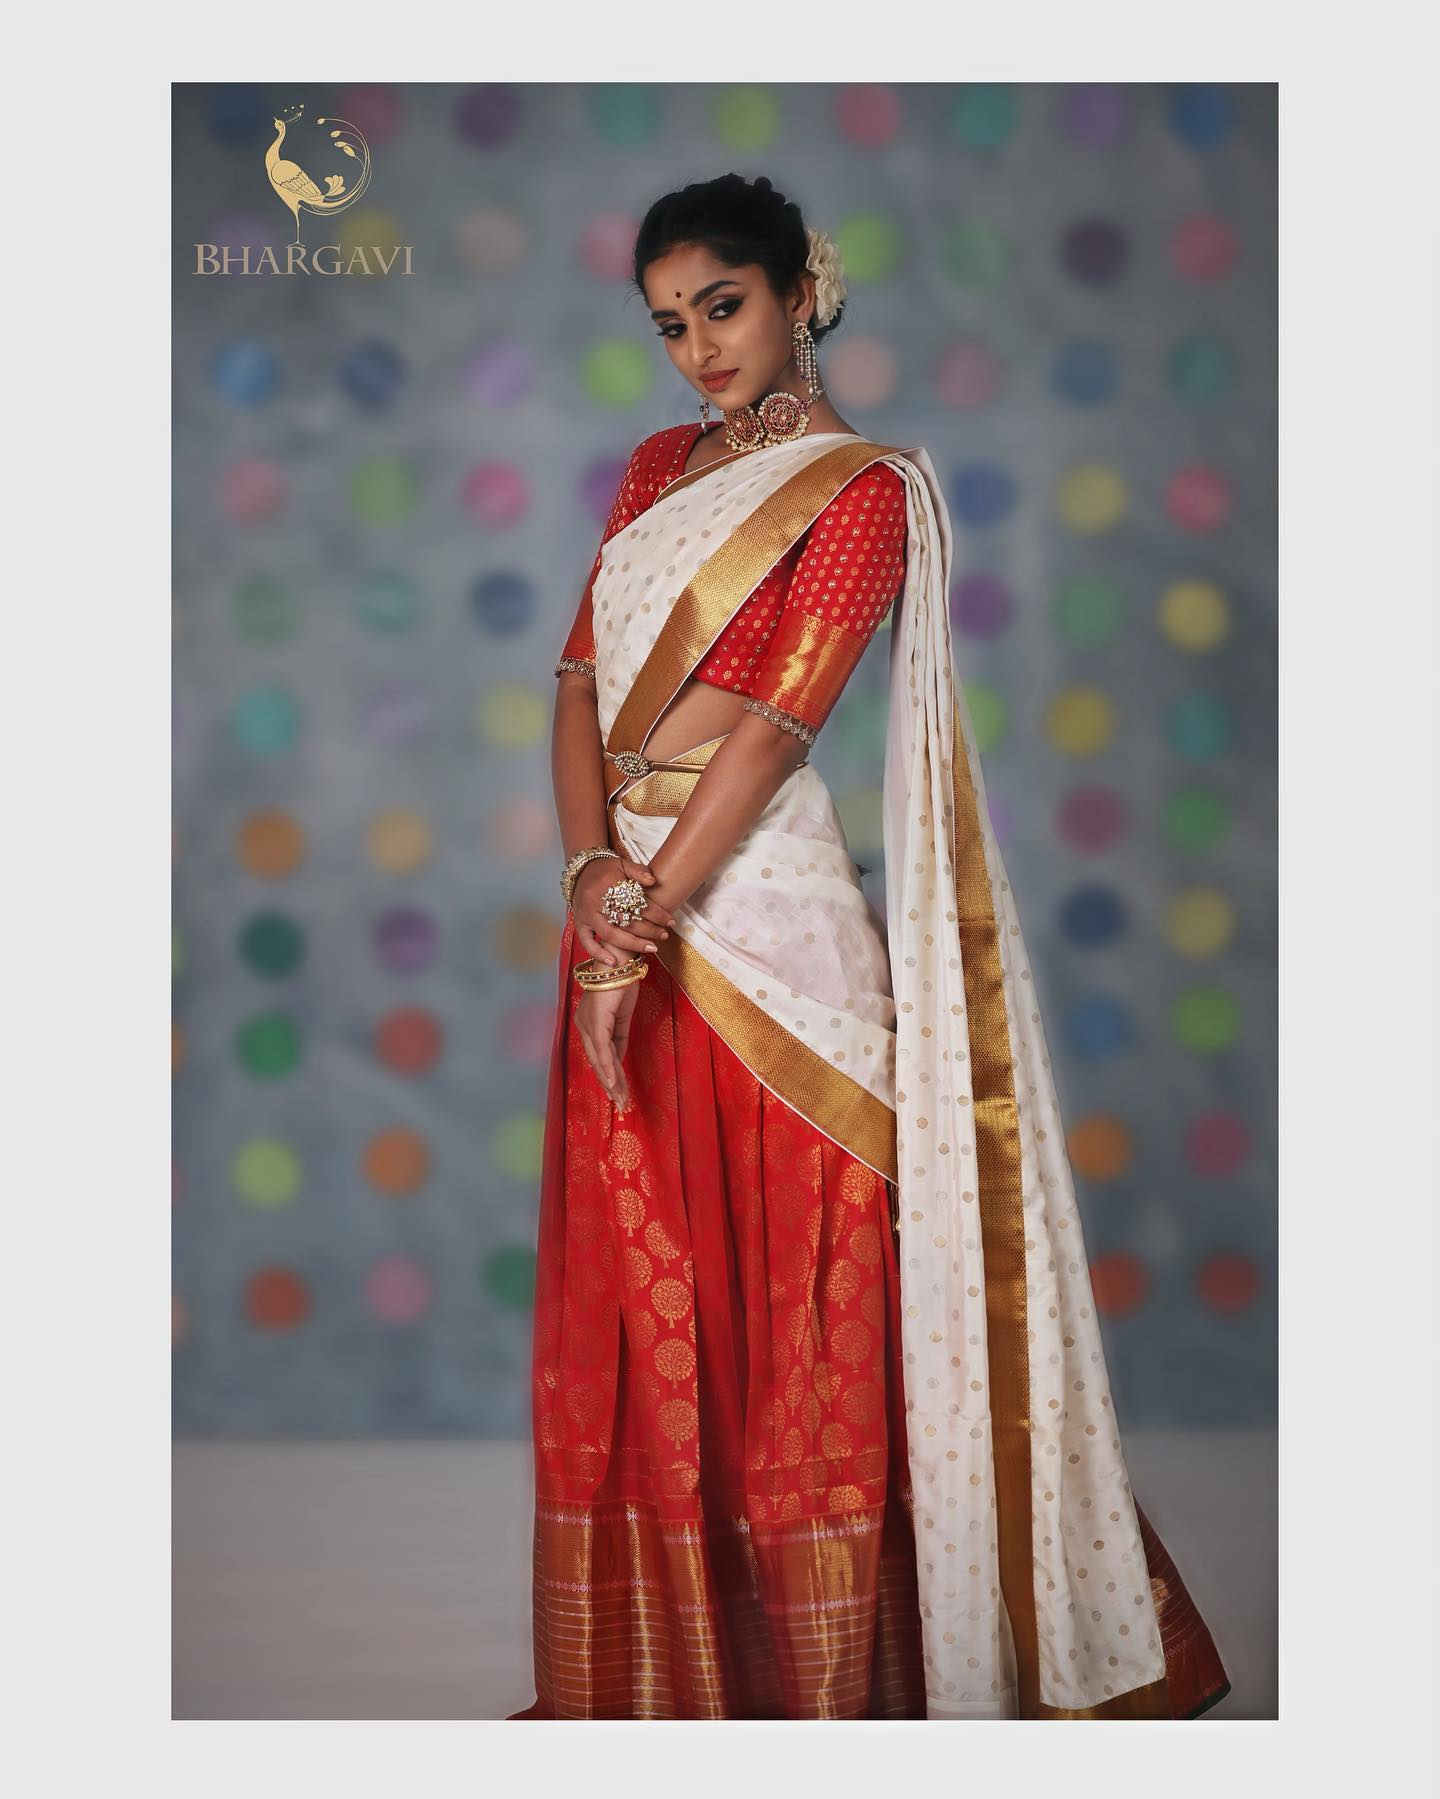 traditional kanchi pattu halfsaree.... The portrait of a traditional Indian woman is often an extremely enticing image of a beautiful maiden draped in a half saree with long braided hair going about her ways of life. This very image often portrayed right from Bapu's days is what has inspired Bhargavi to come up with this collection dedicated to the Sisterhood of today's contemporary women who are looking to connect with their roots again!  2021-04-08